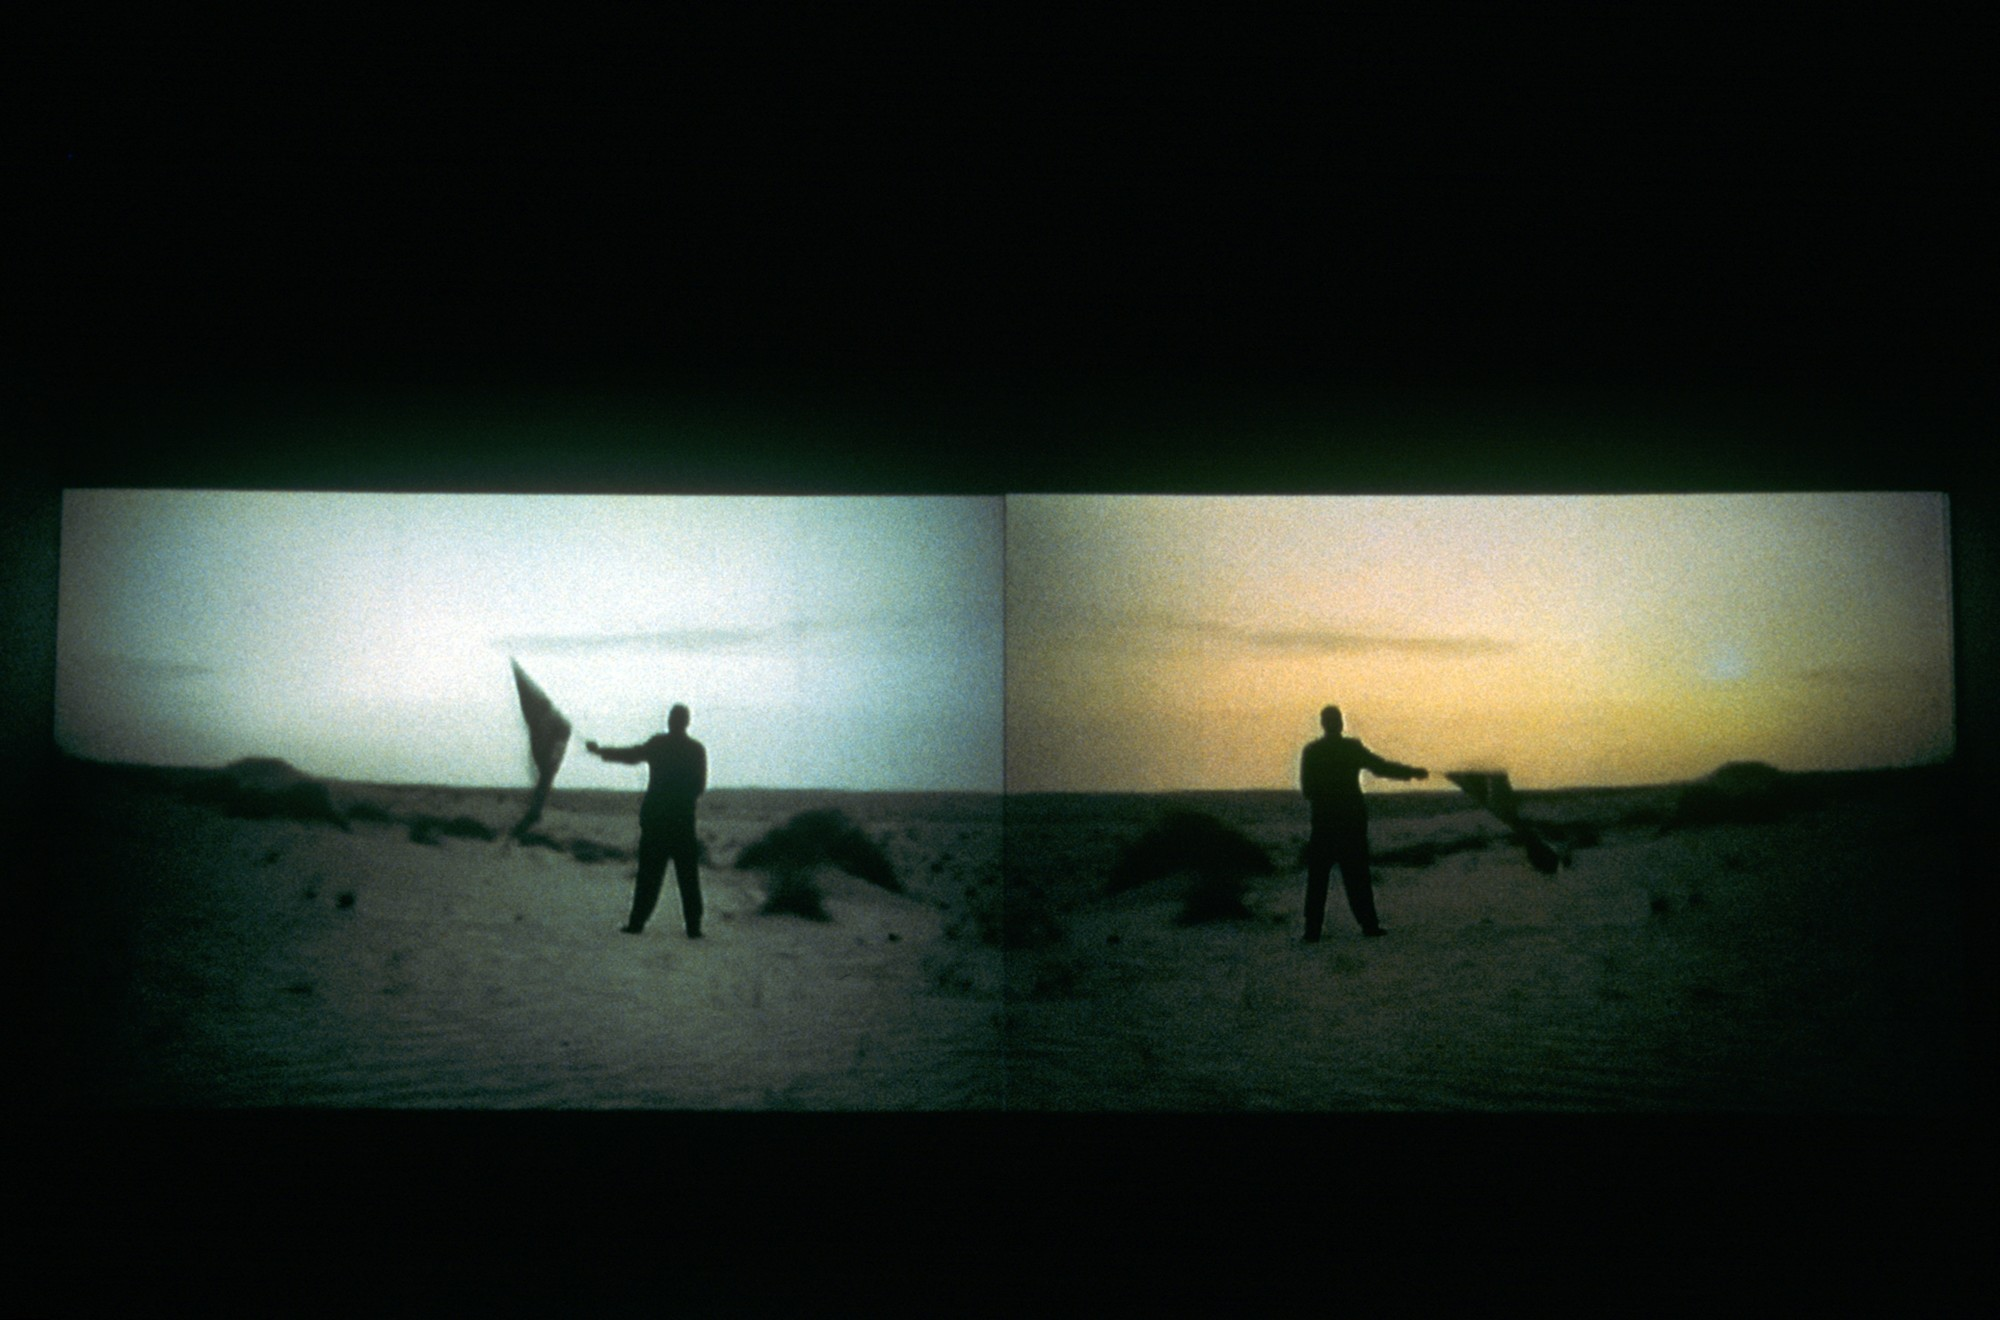 Oxford Brookes University Museum, 1999  4'53'', two-screen installation, 35mm film transferred to digital, sound